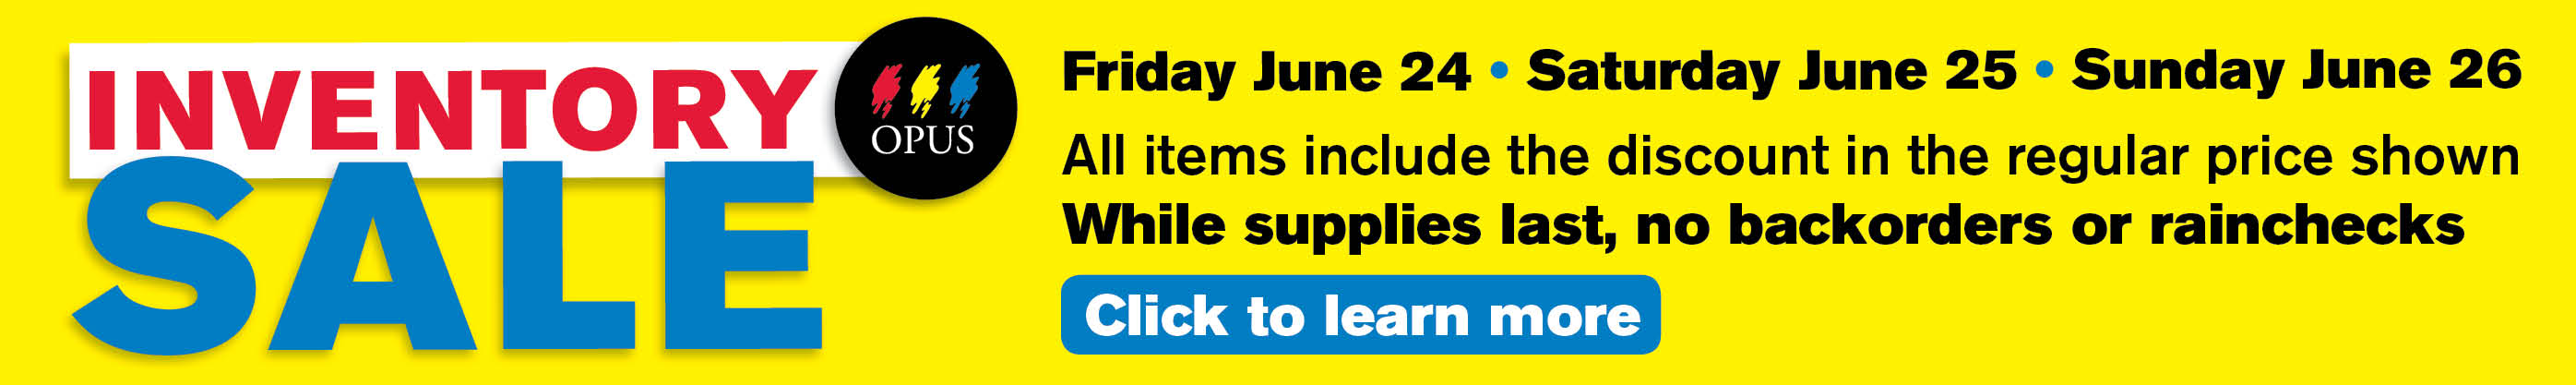 The Annual Inventory Sale 2016: Friday June 24, Saturday June 25, Sunday June 26. All items include the discount in the regular price shown. While supplies last, no backorders or rainchecks.